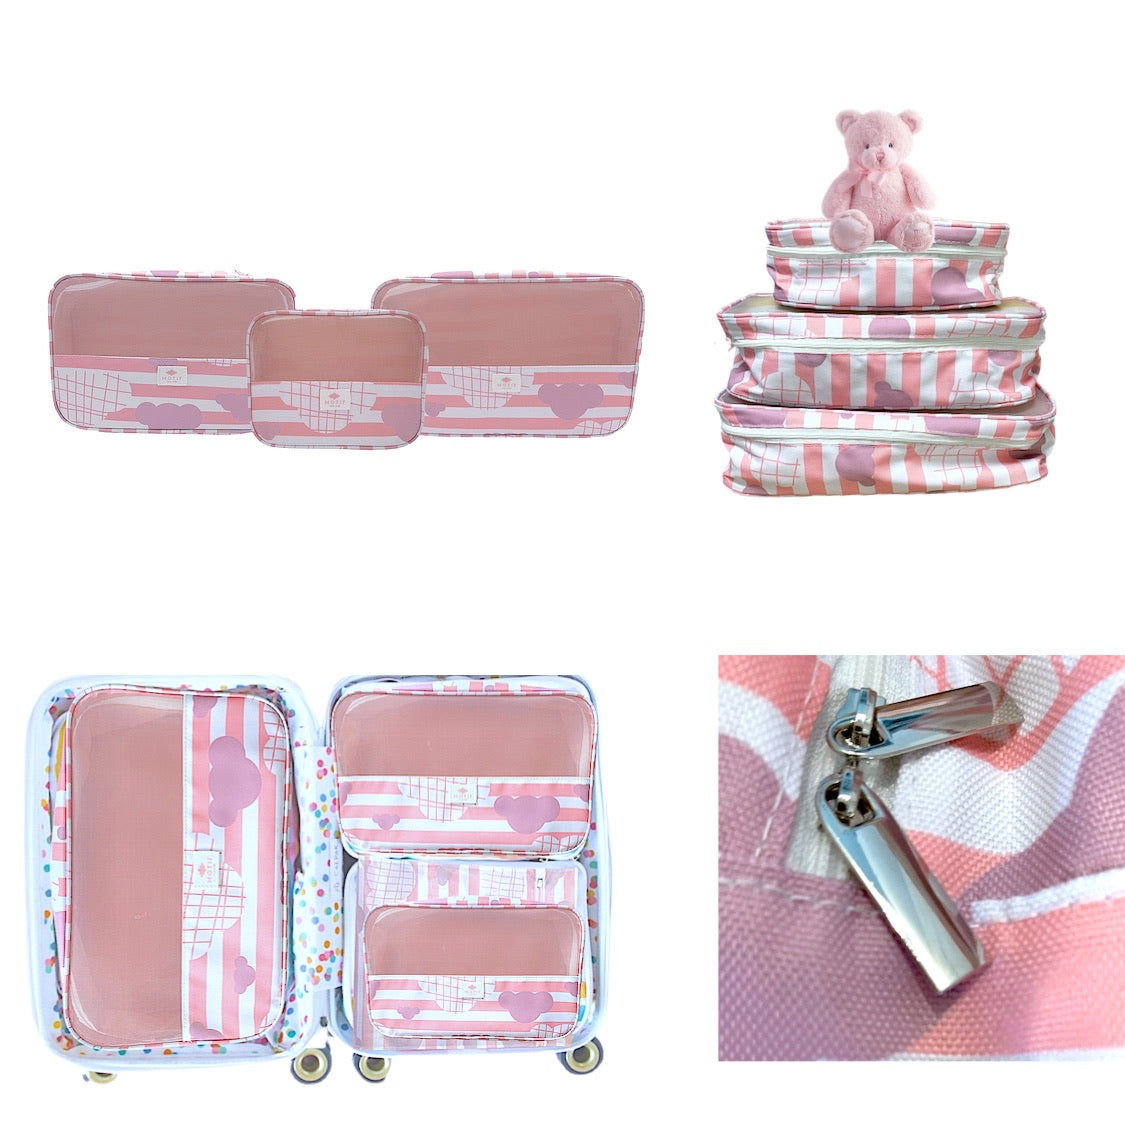 Itty Bitty Pink Baby Packing Cube Collection